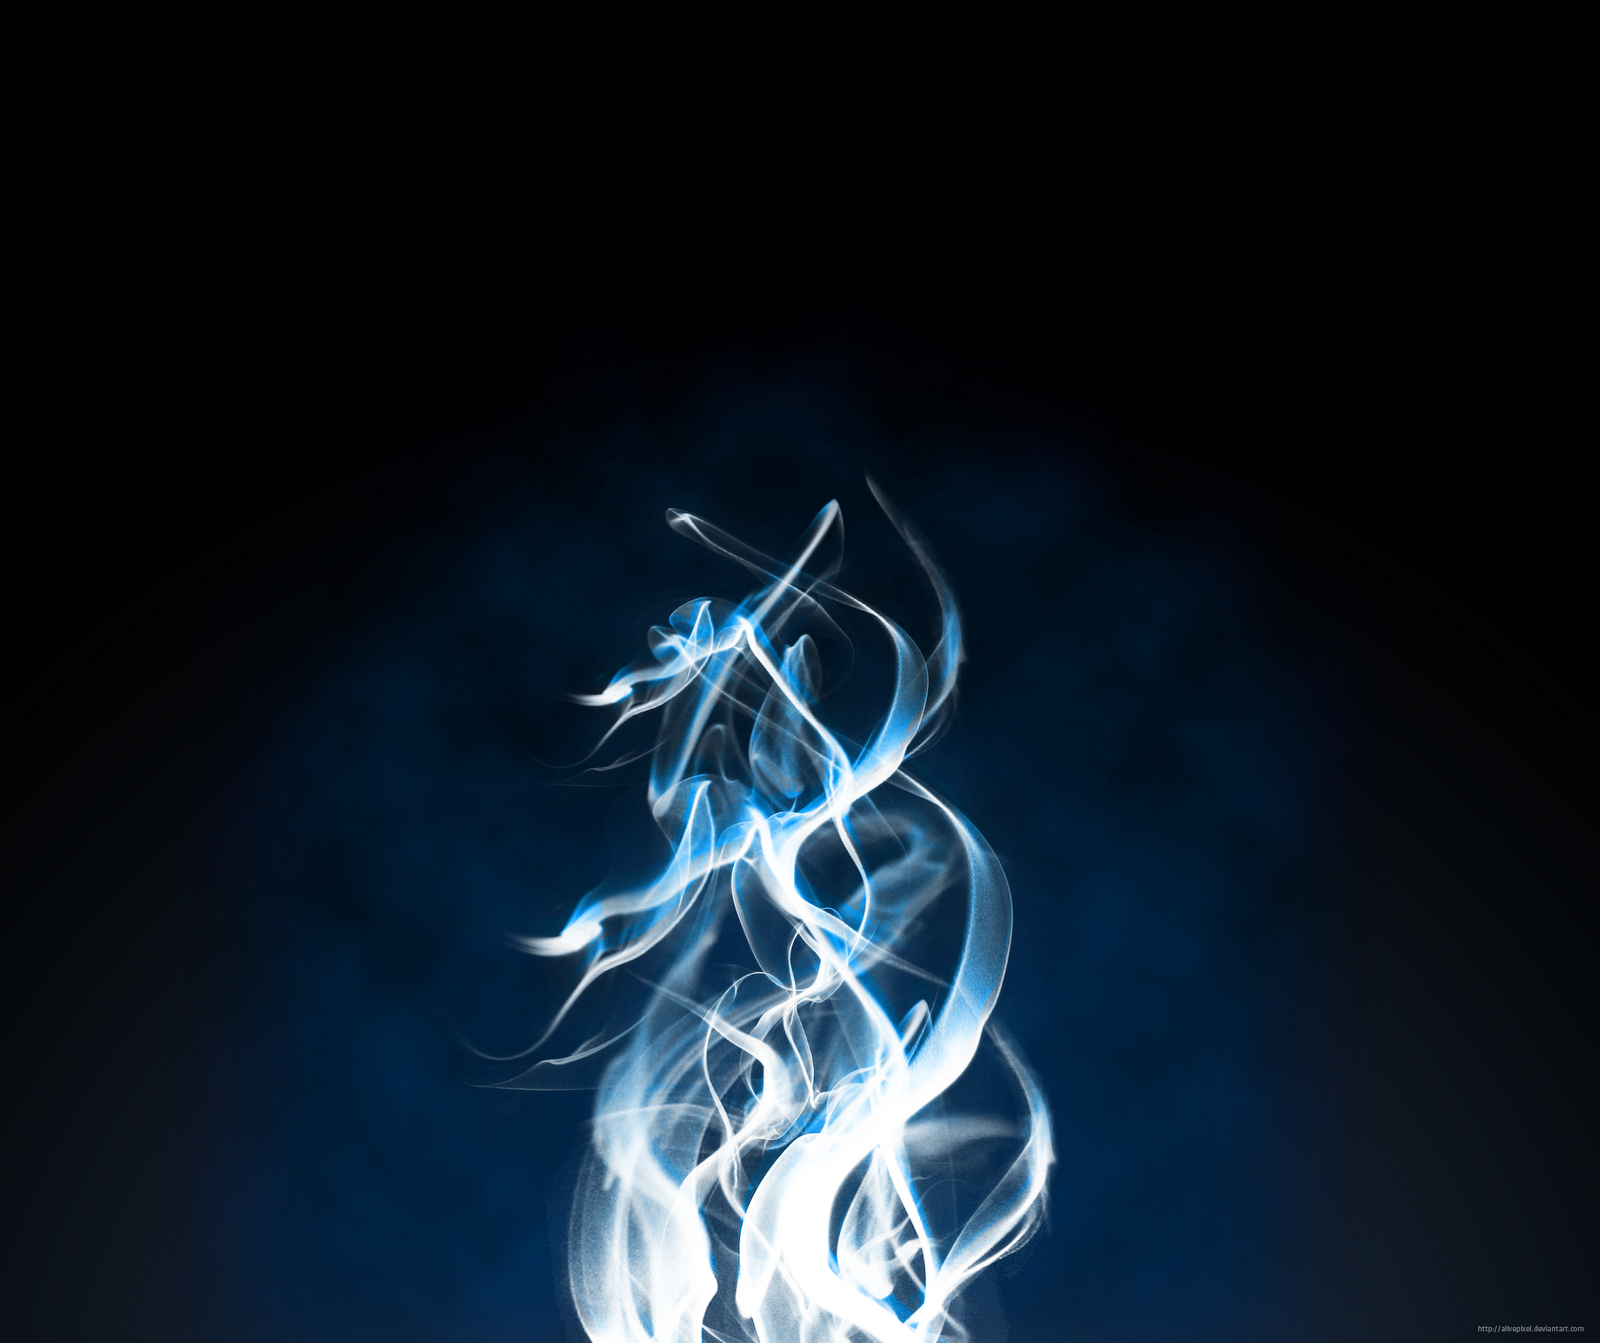 Blue fire wallpaper background Funny amp Amazing Images 1600x1343